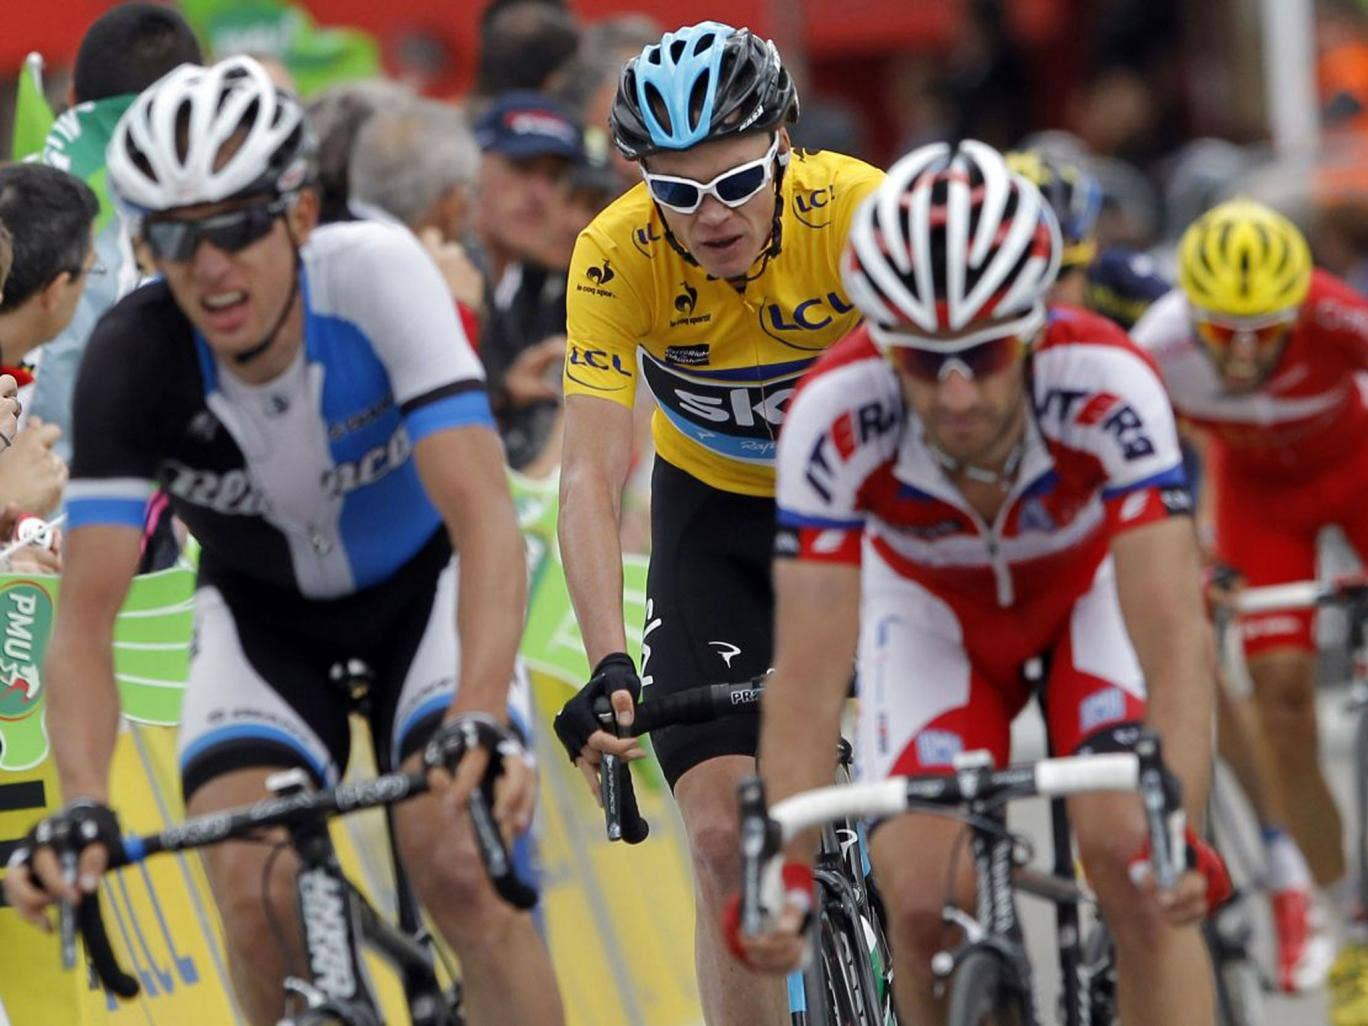 Chris Froome's measured ride in yesterday's stage keeps him on track to win the Critérium du Dauphiné